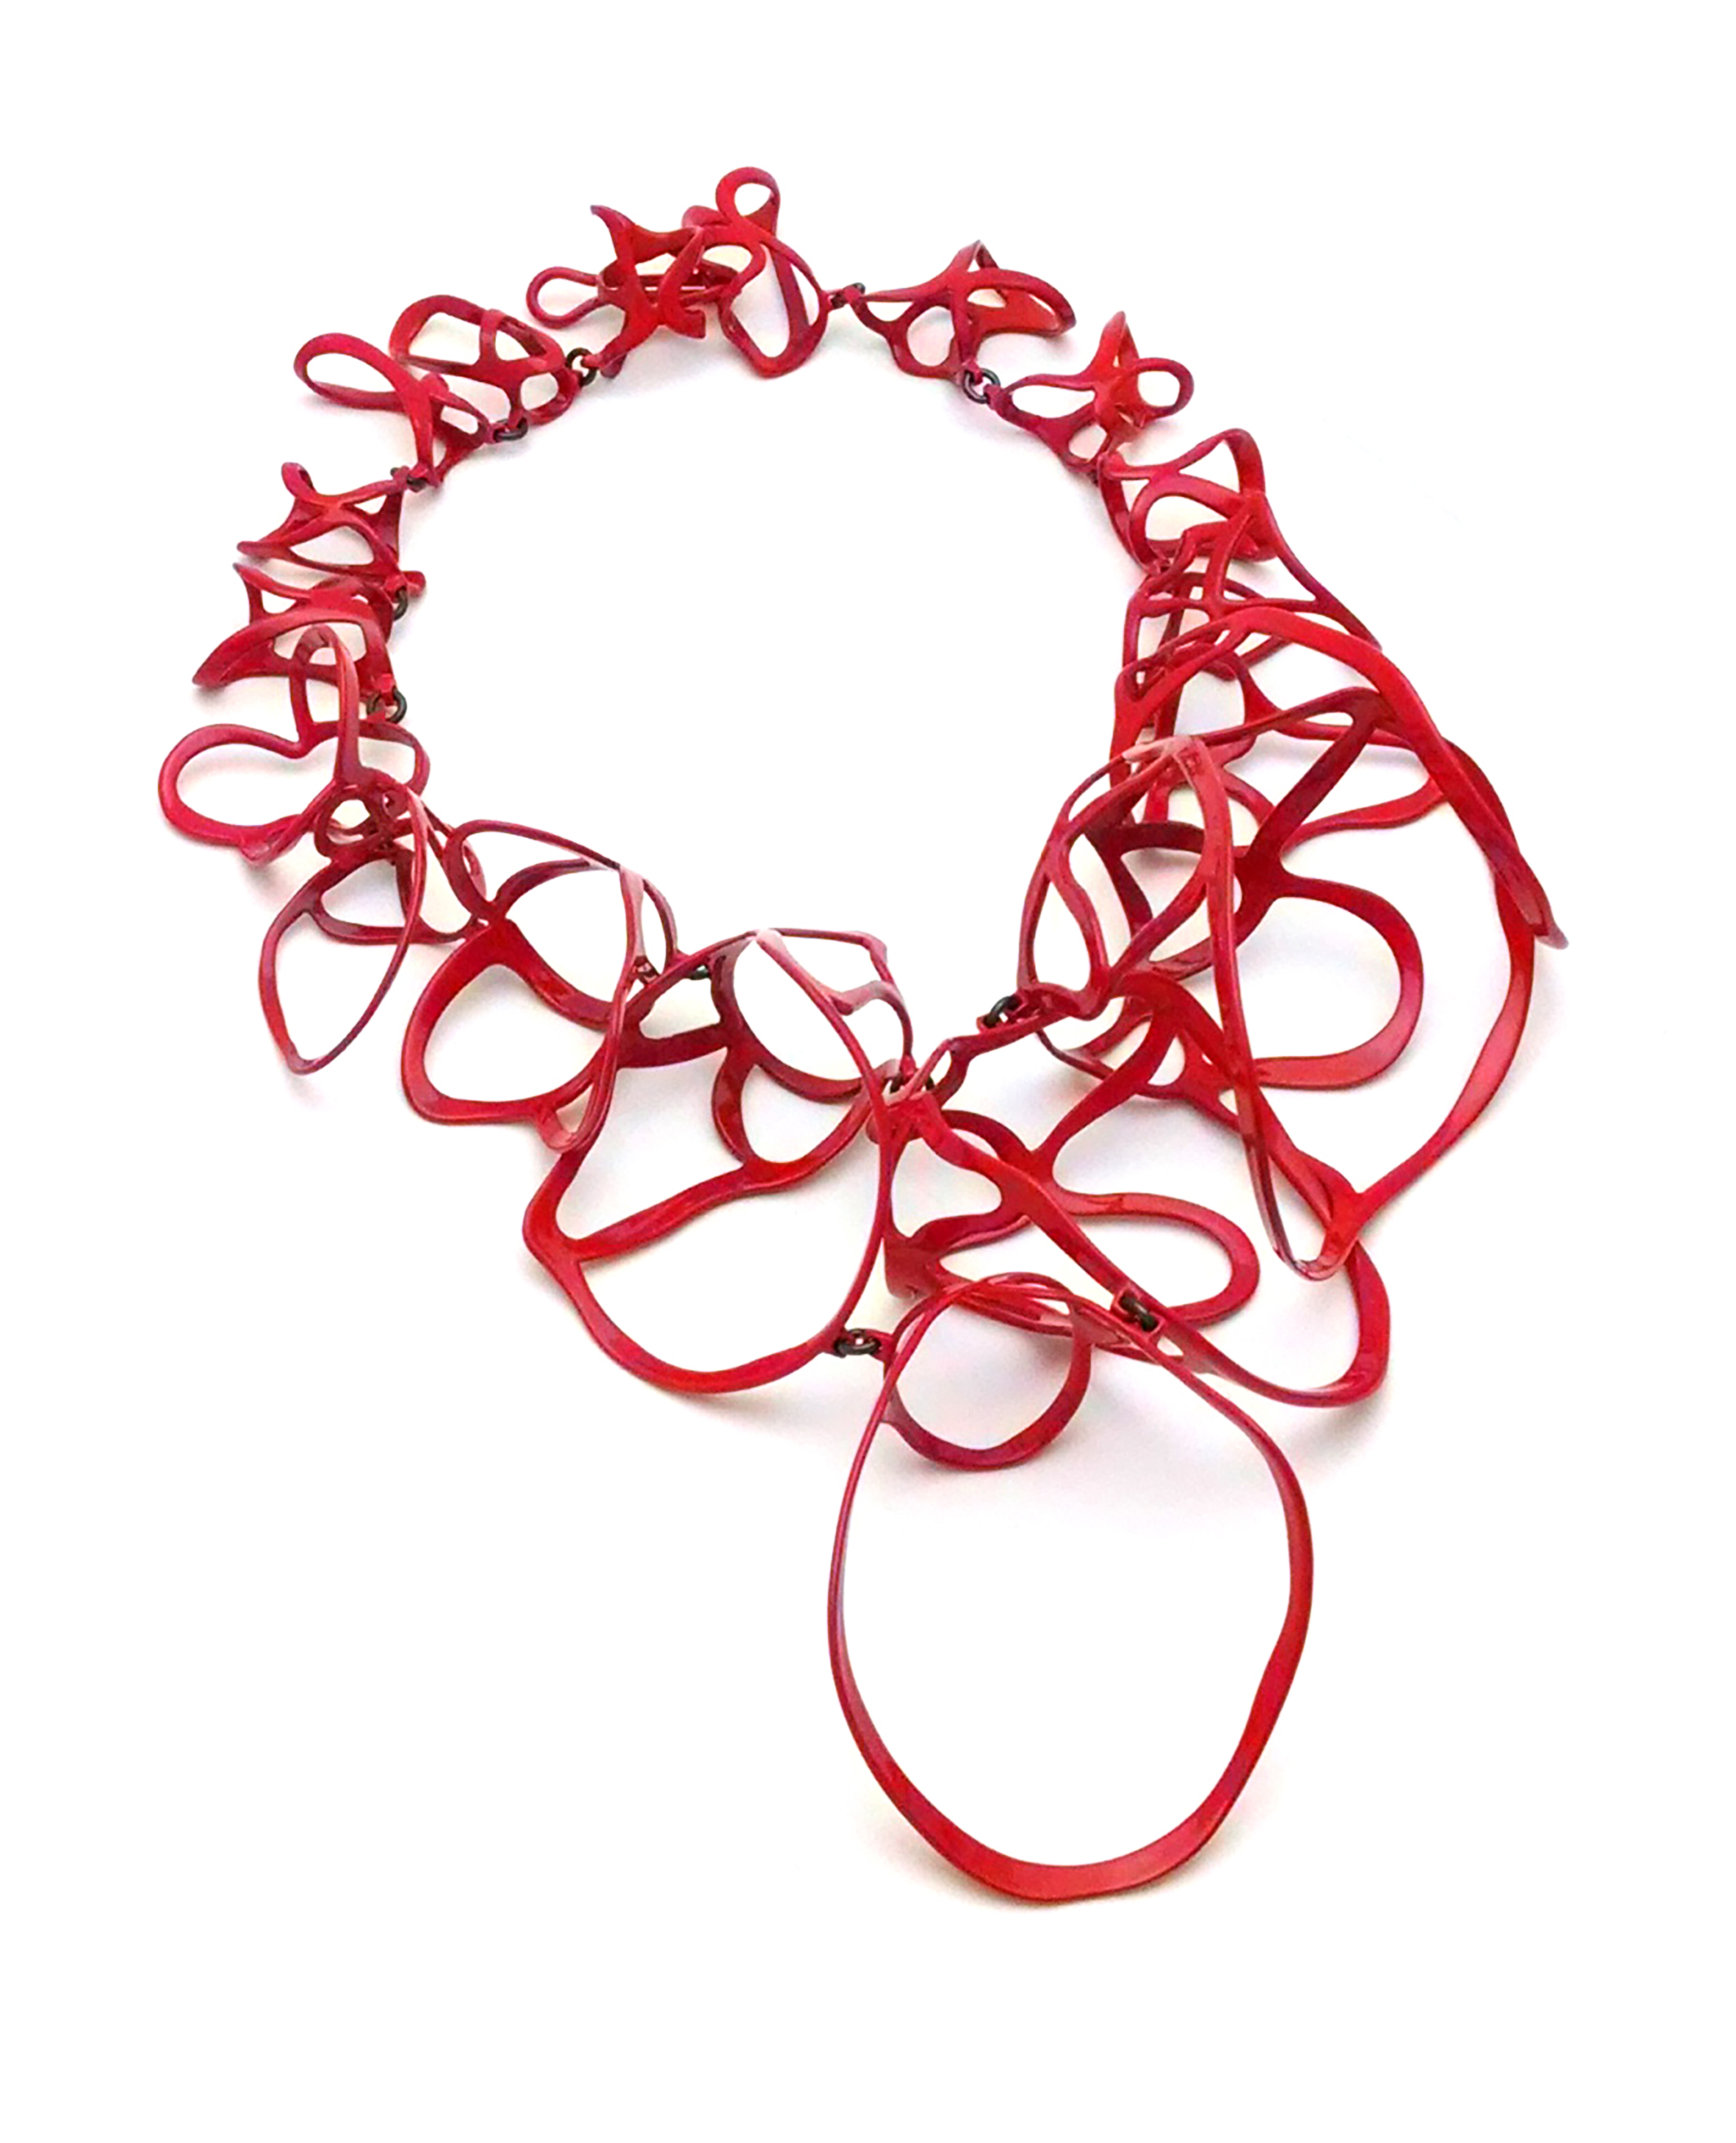 Copy of RedClusterNecklace_3.jpg